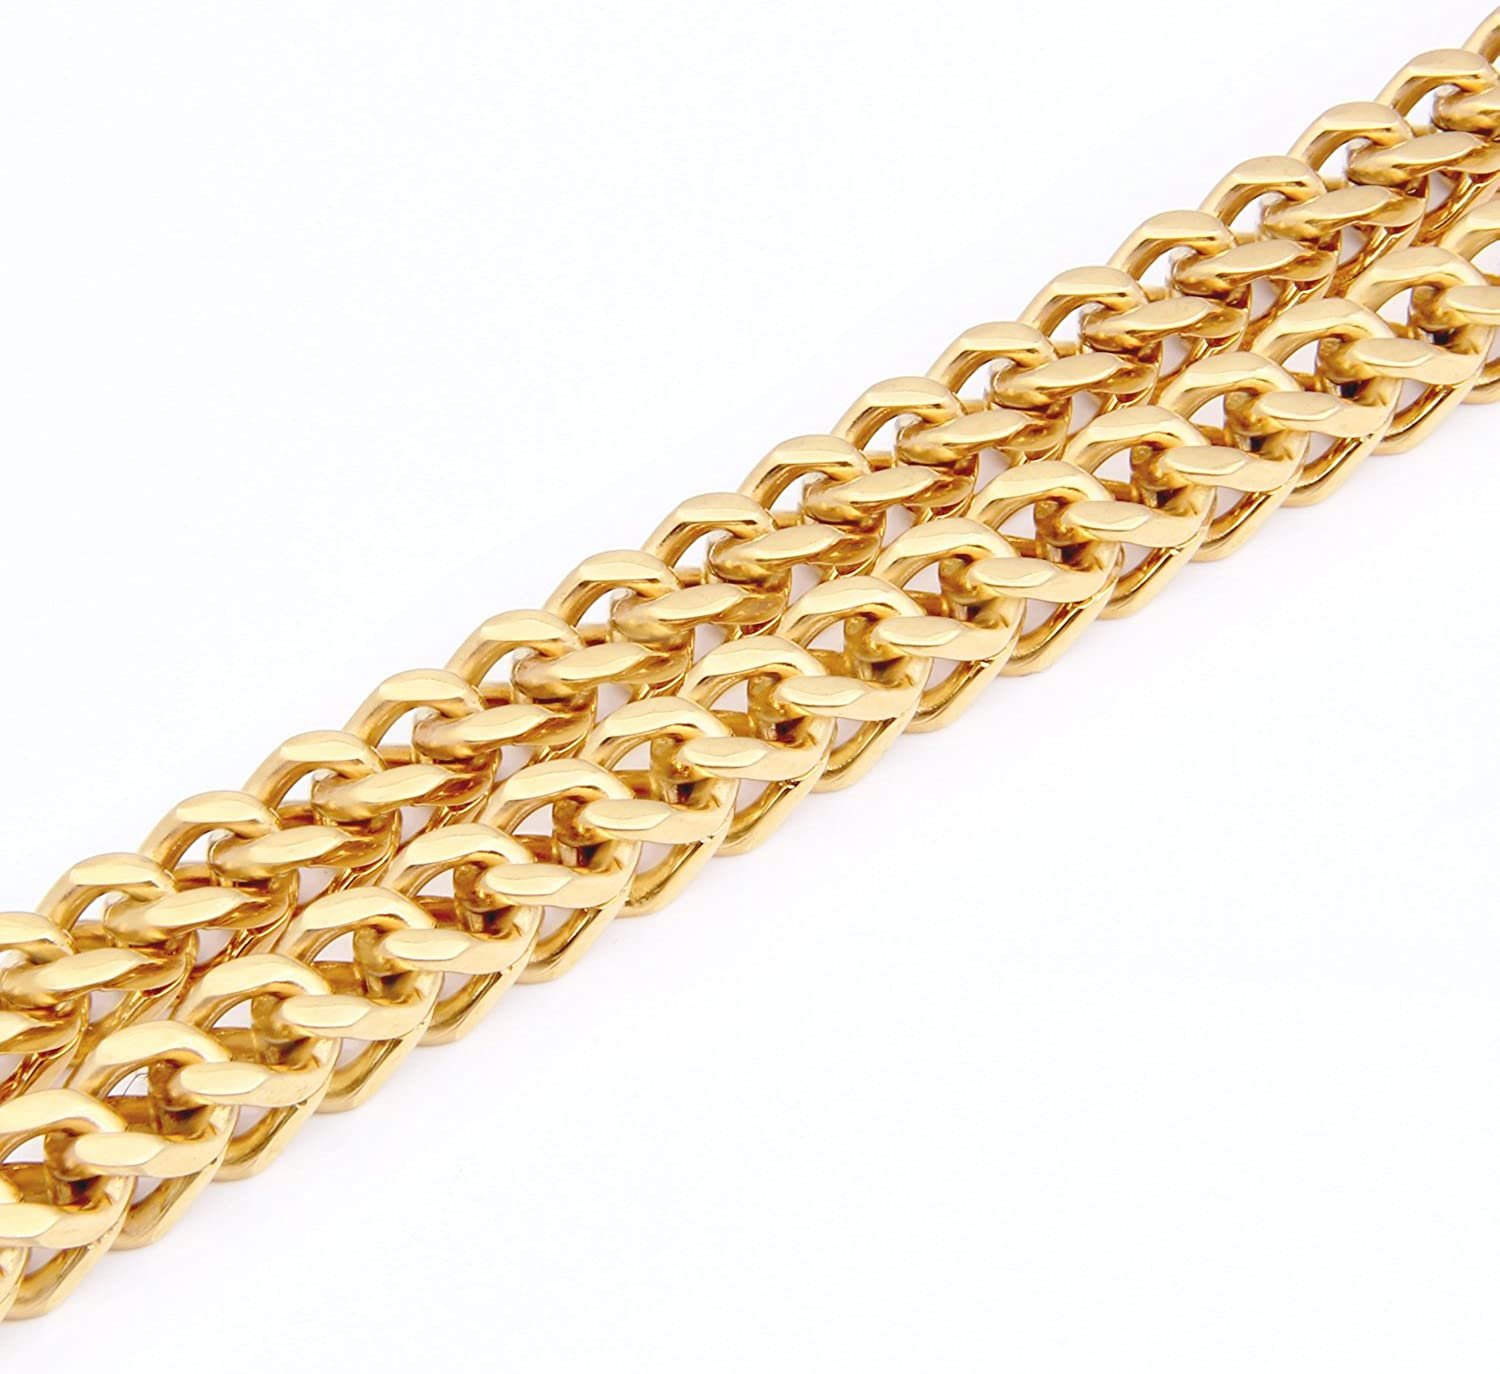 Gold MENDINO Mens Stainless Steel Necklace Twist Link Chain Width 8mm with a Velvet Bag